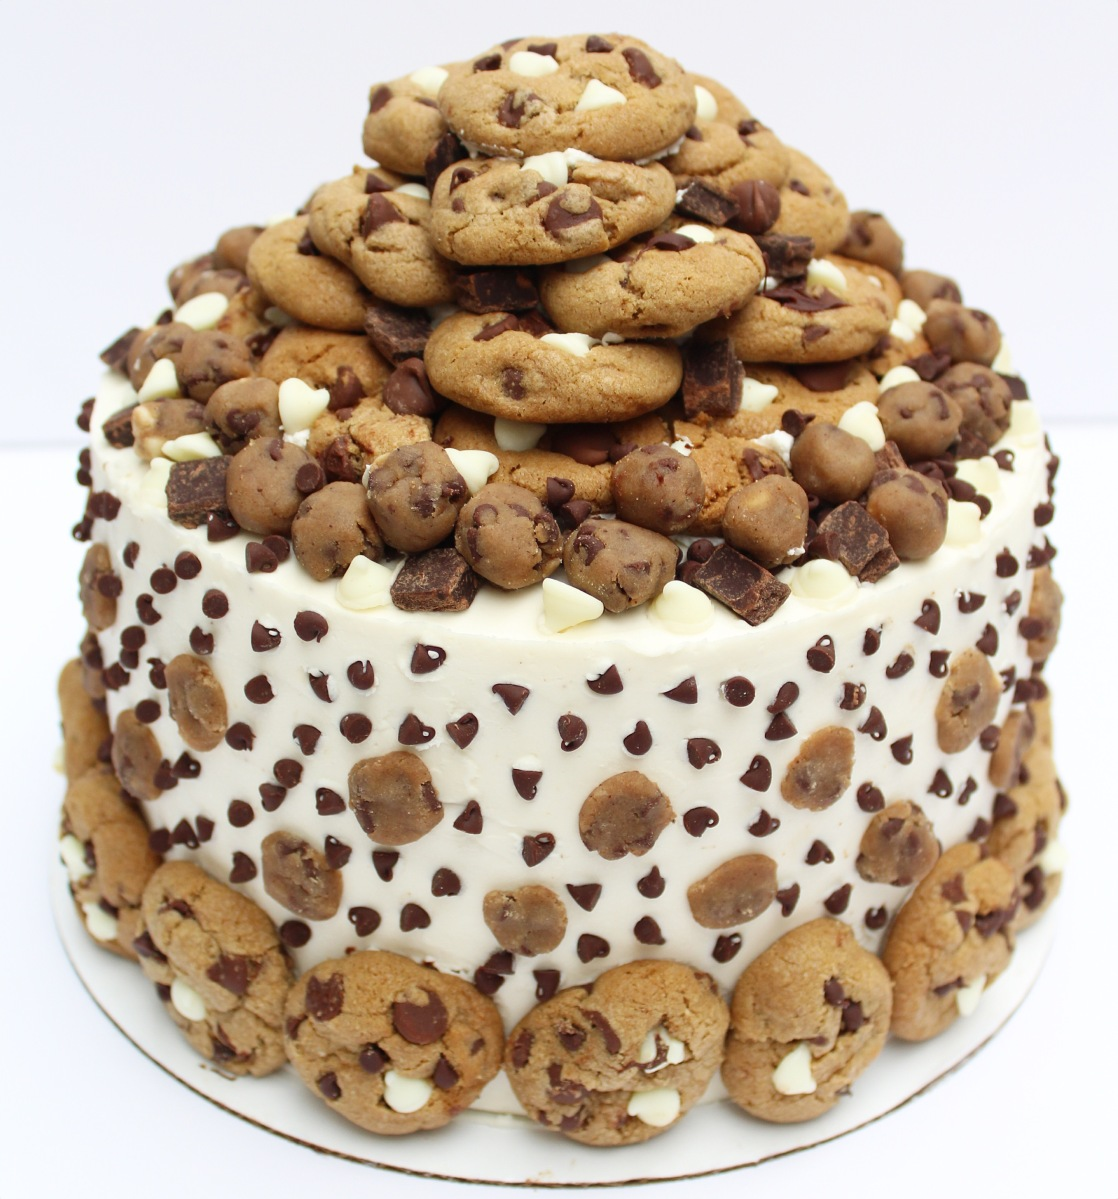 Chocolate Chip Cookie Mega Cake